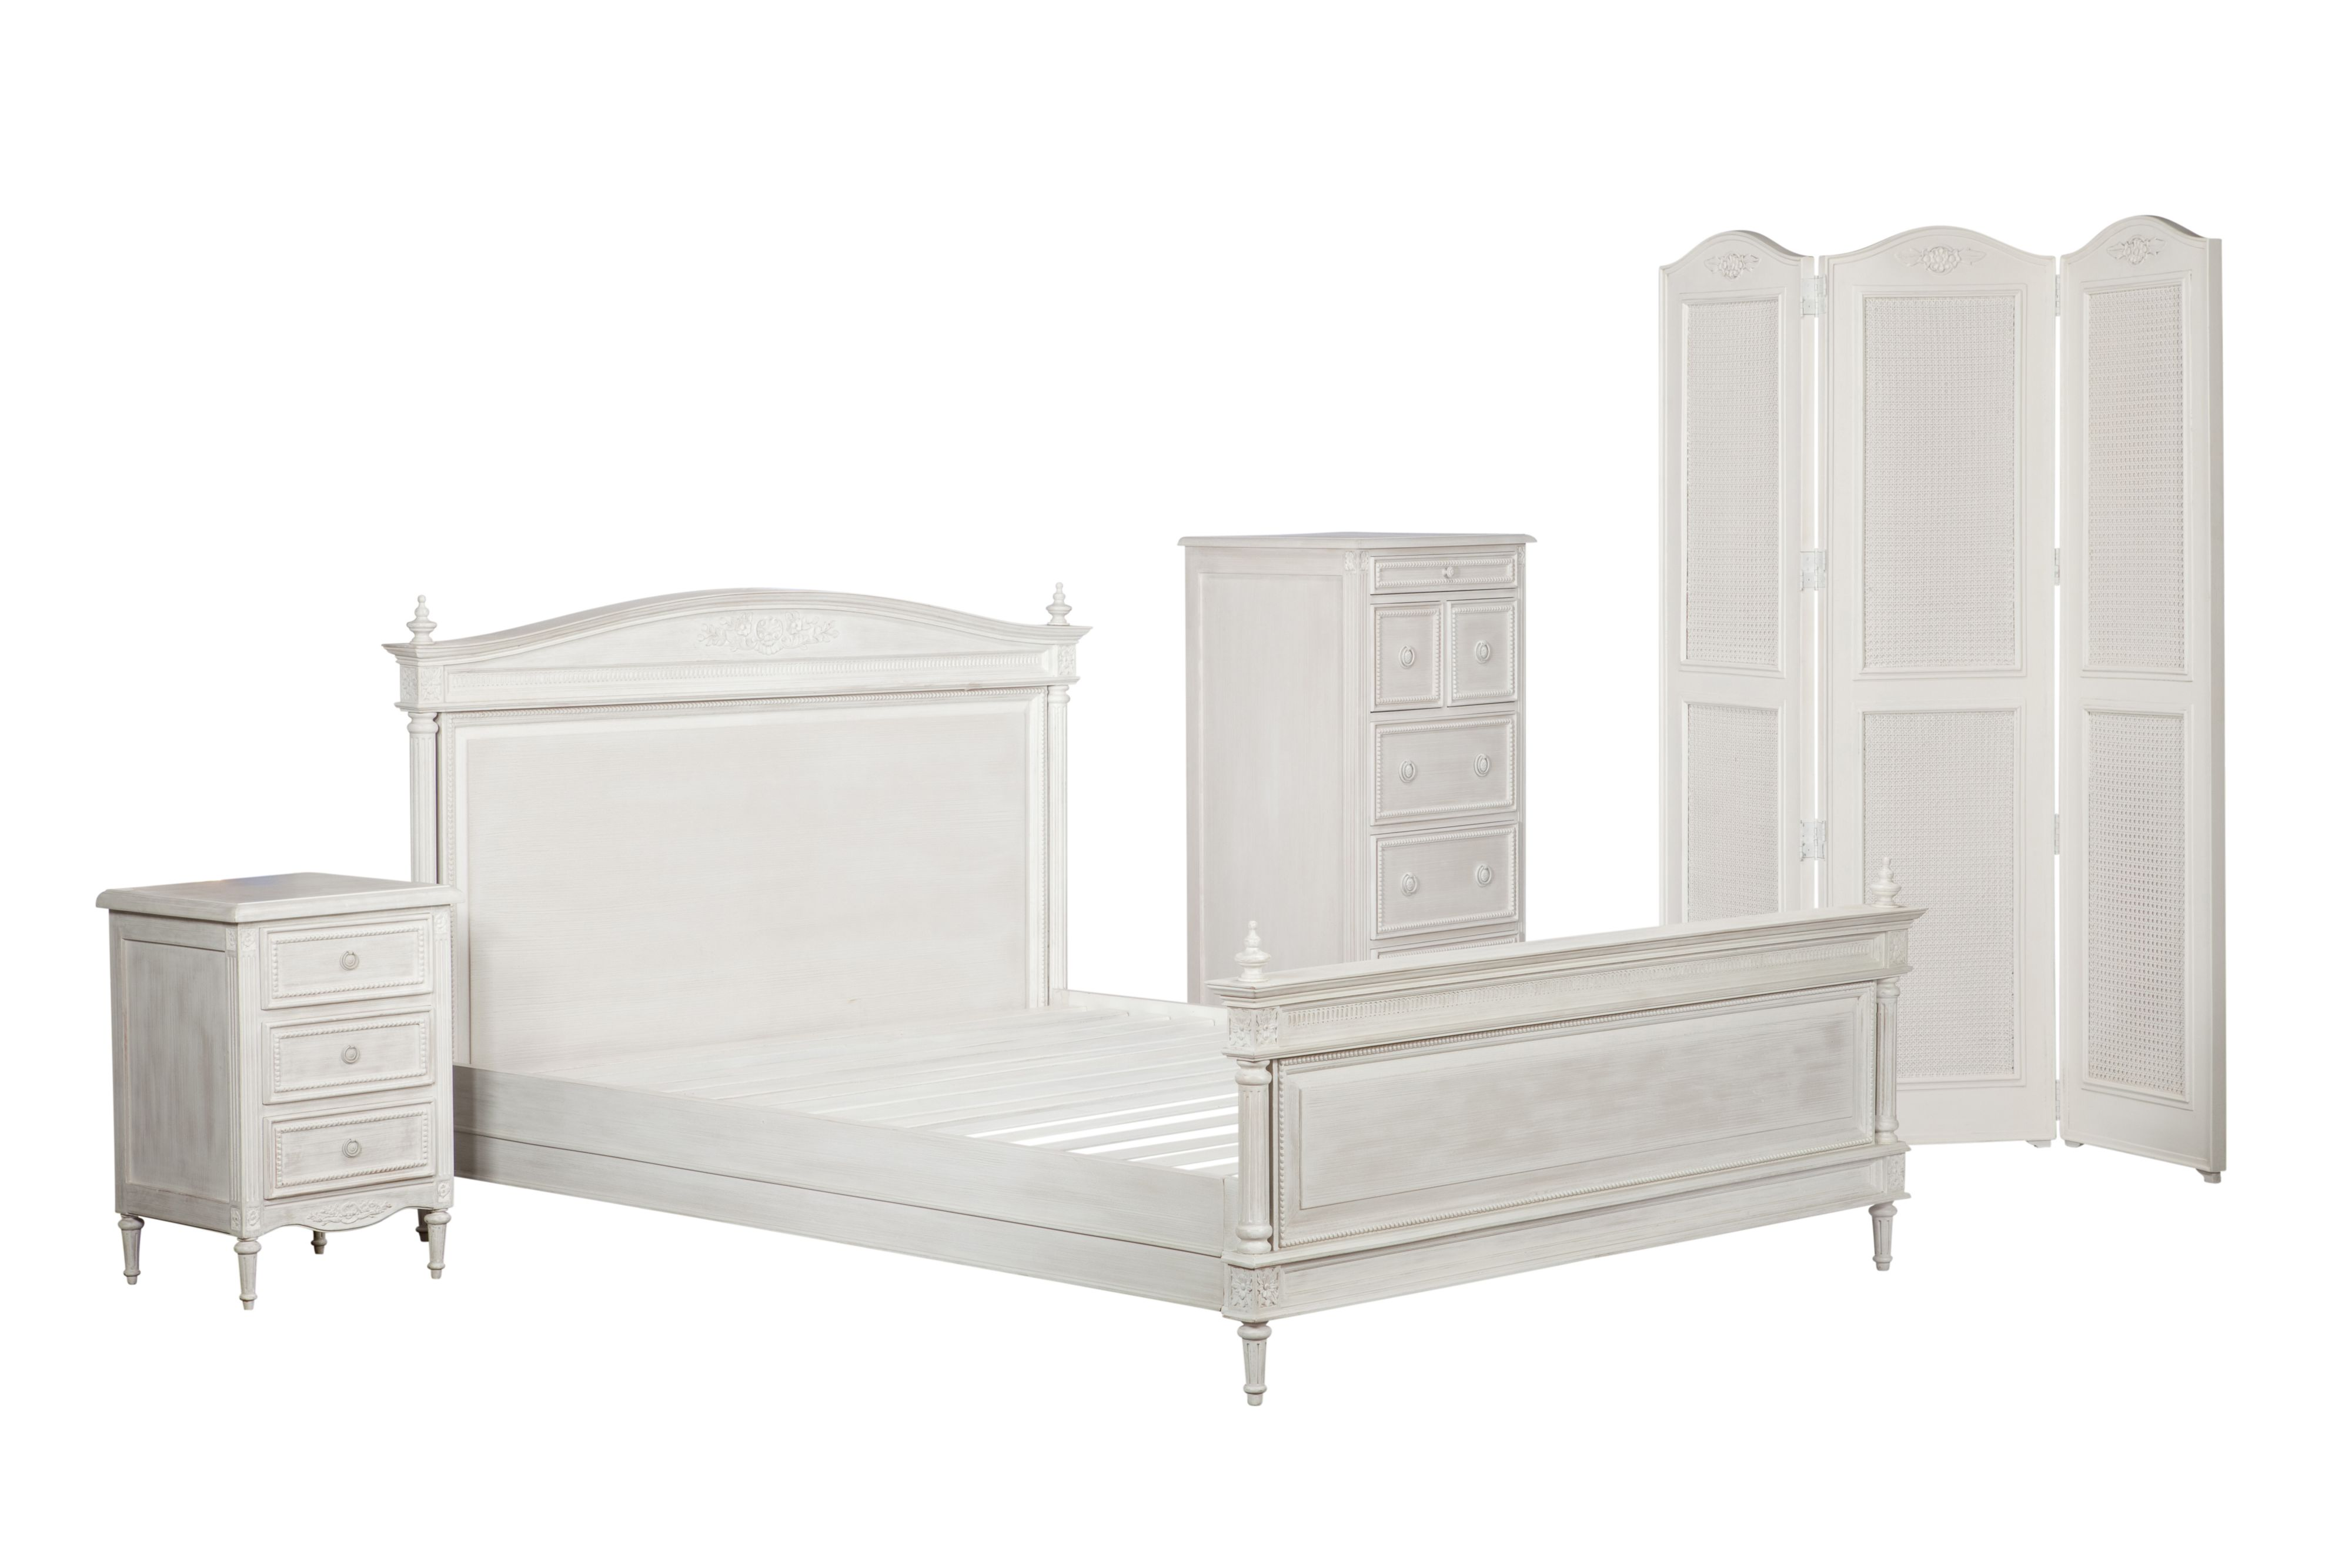 Heather bedroom range